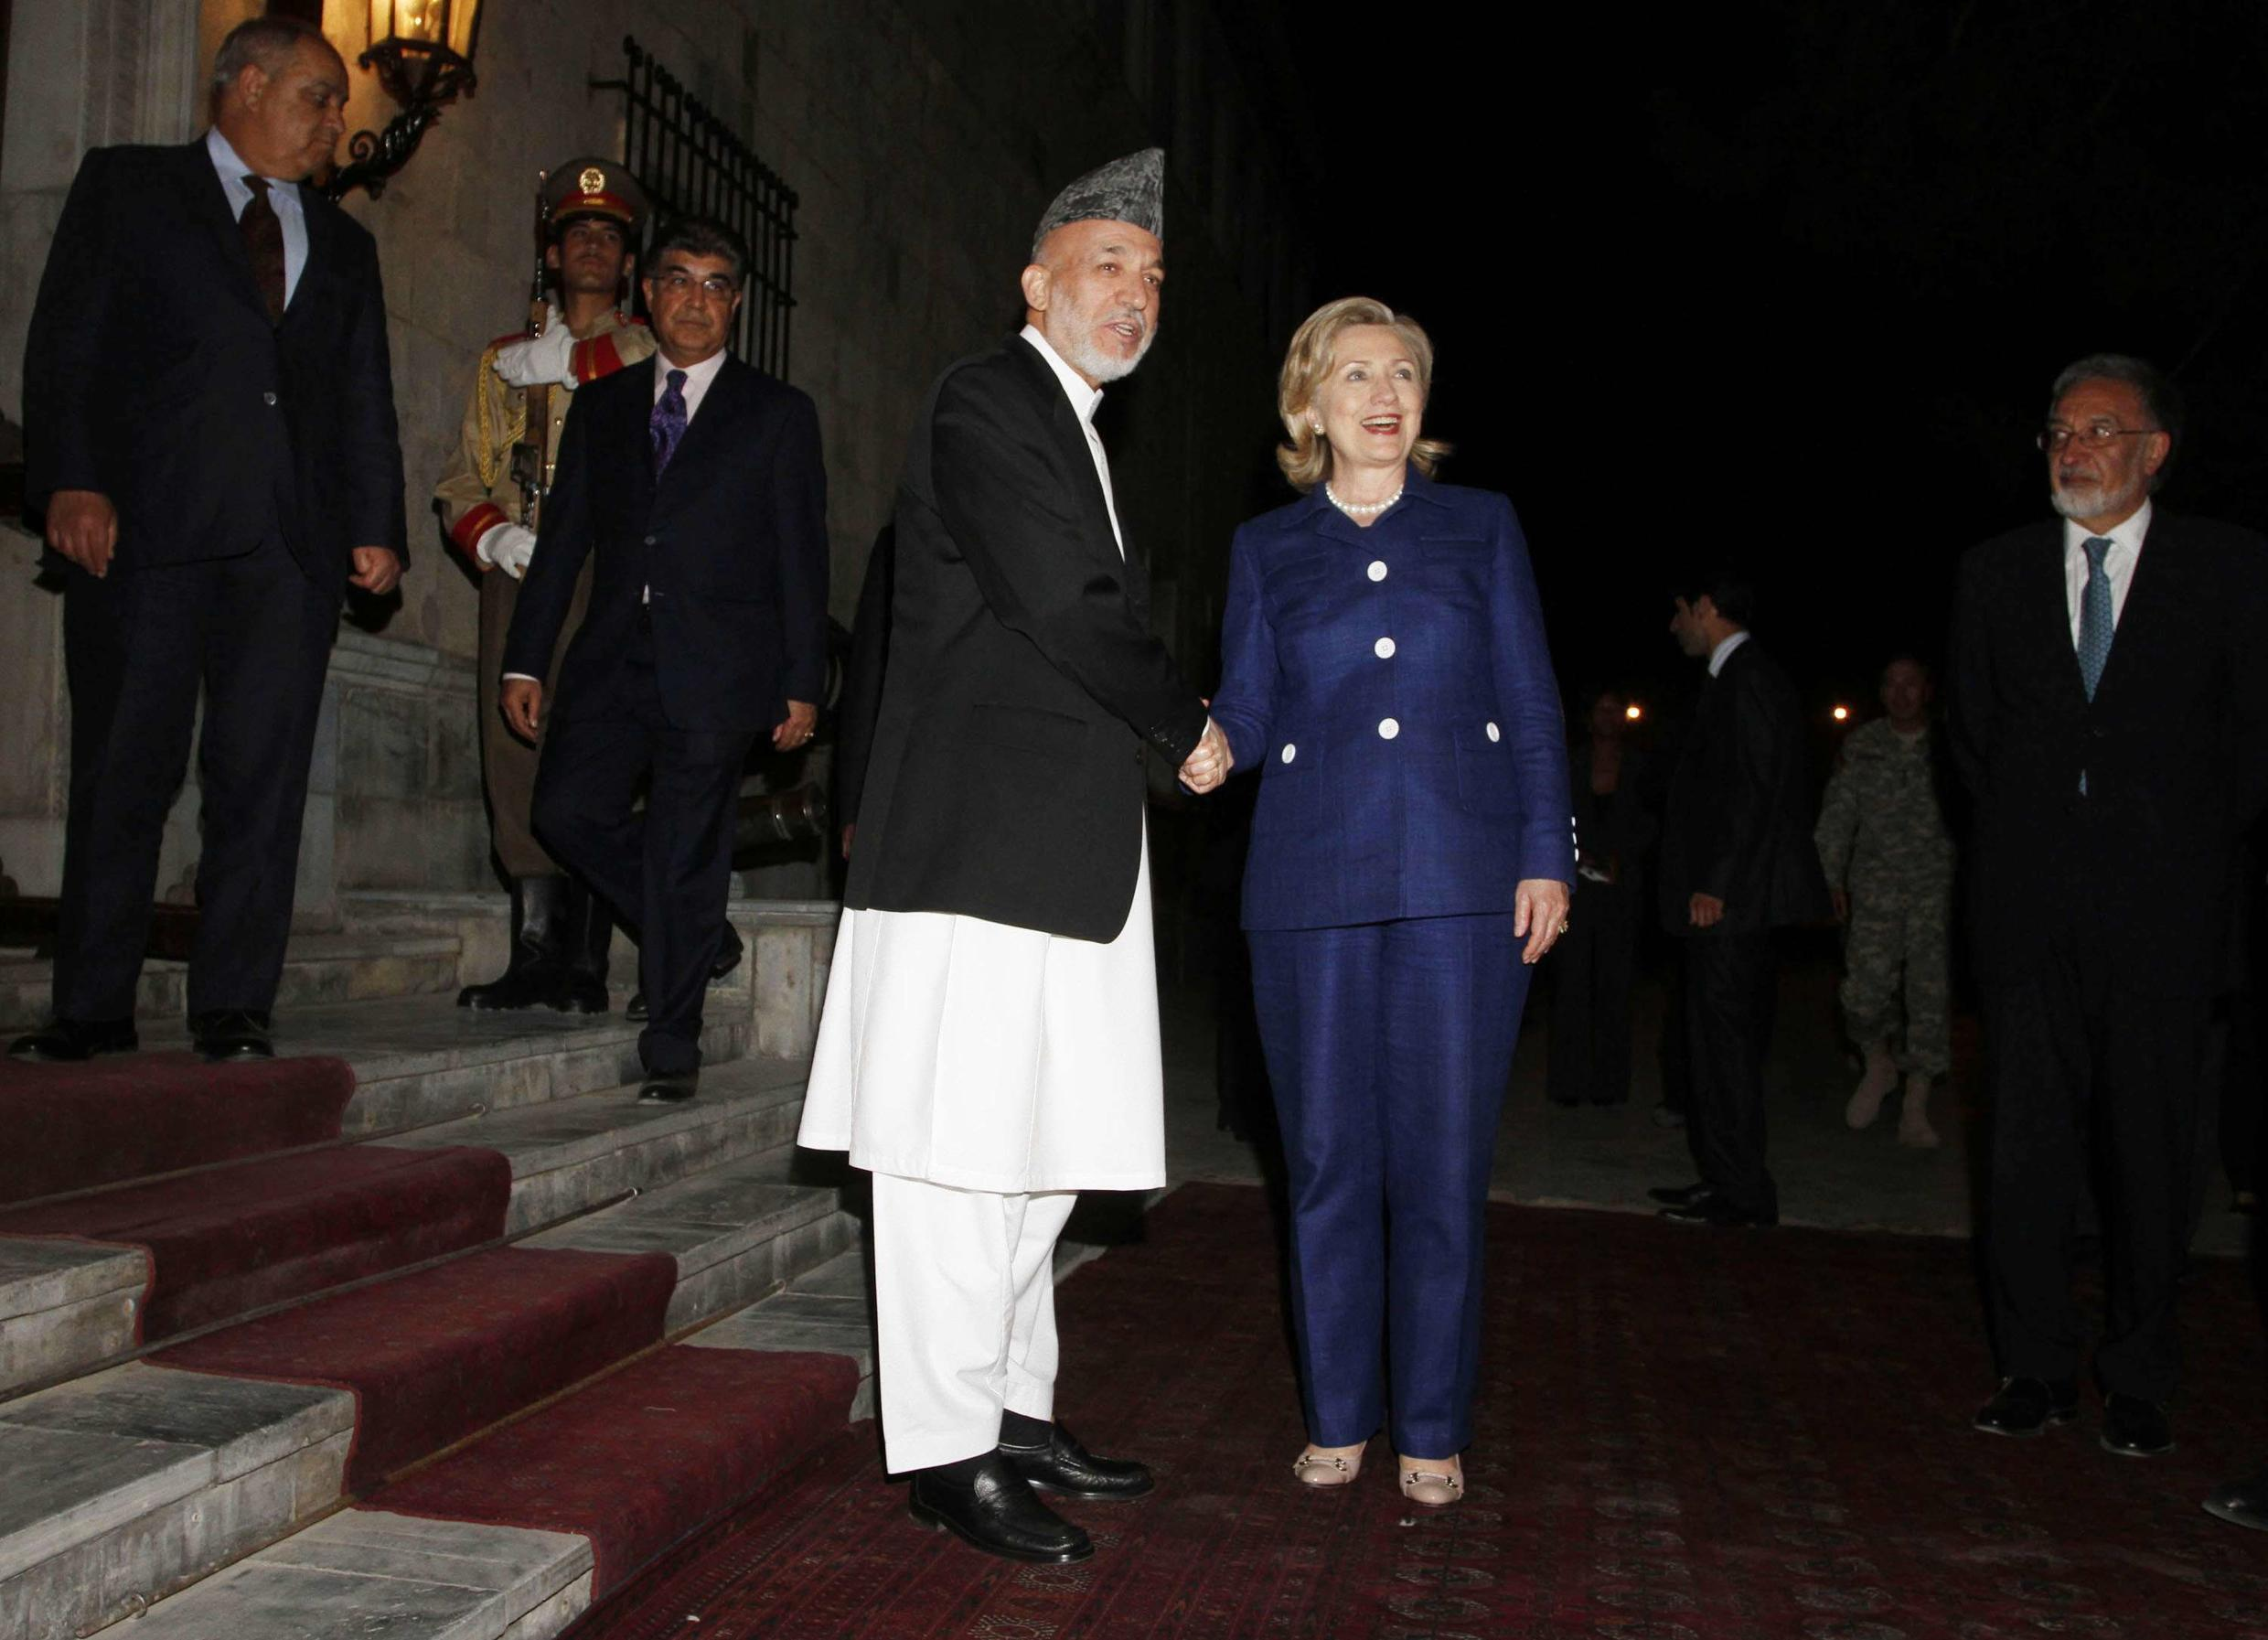 Afghan President Hamid Karzai shakes hands with U.S. Secretary of State Hillary Clinton after her arrival at the presidential palace in Kabul